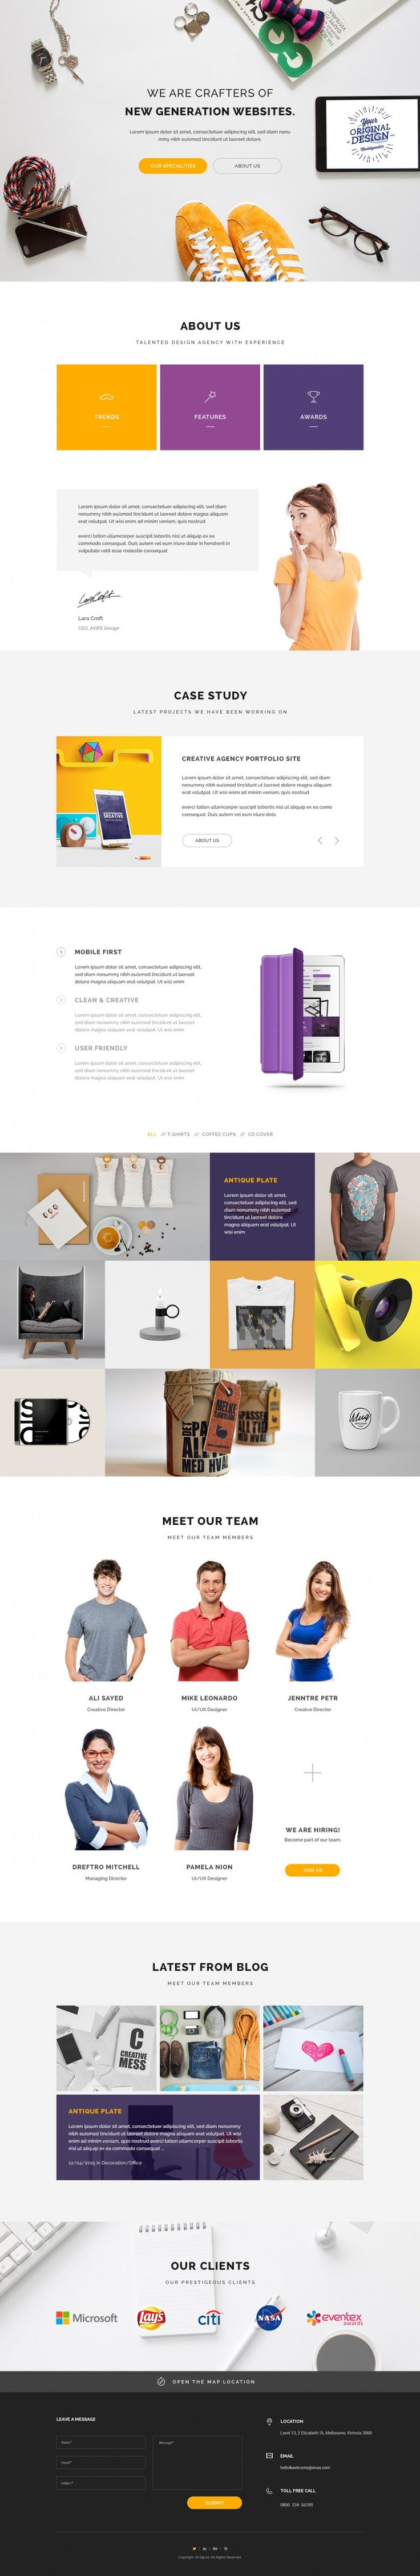 Home Page U2013 Web Design Agency